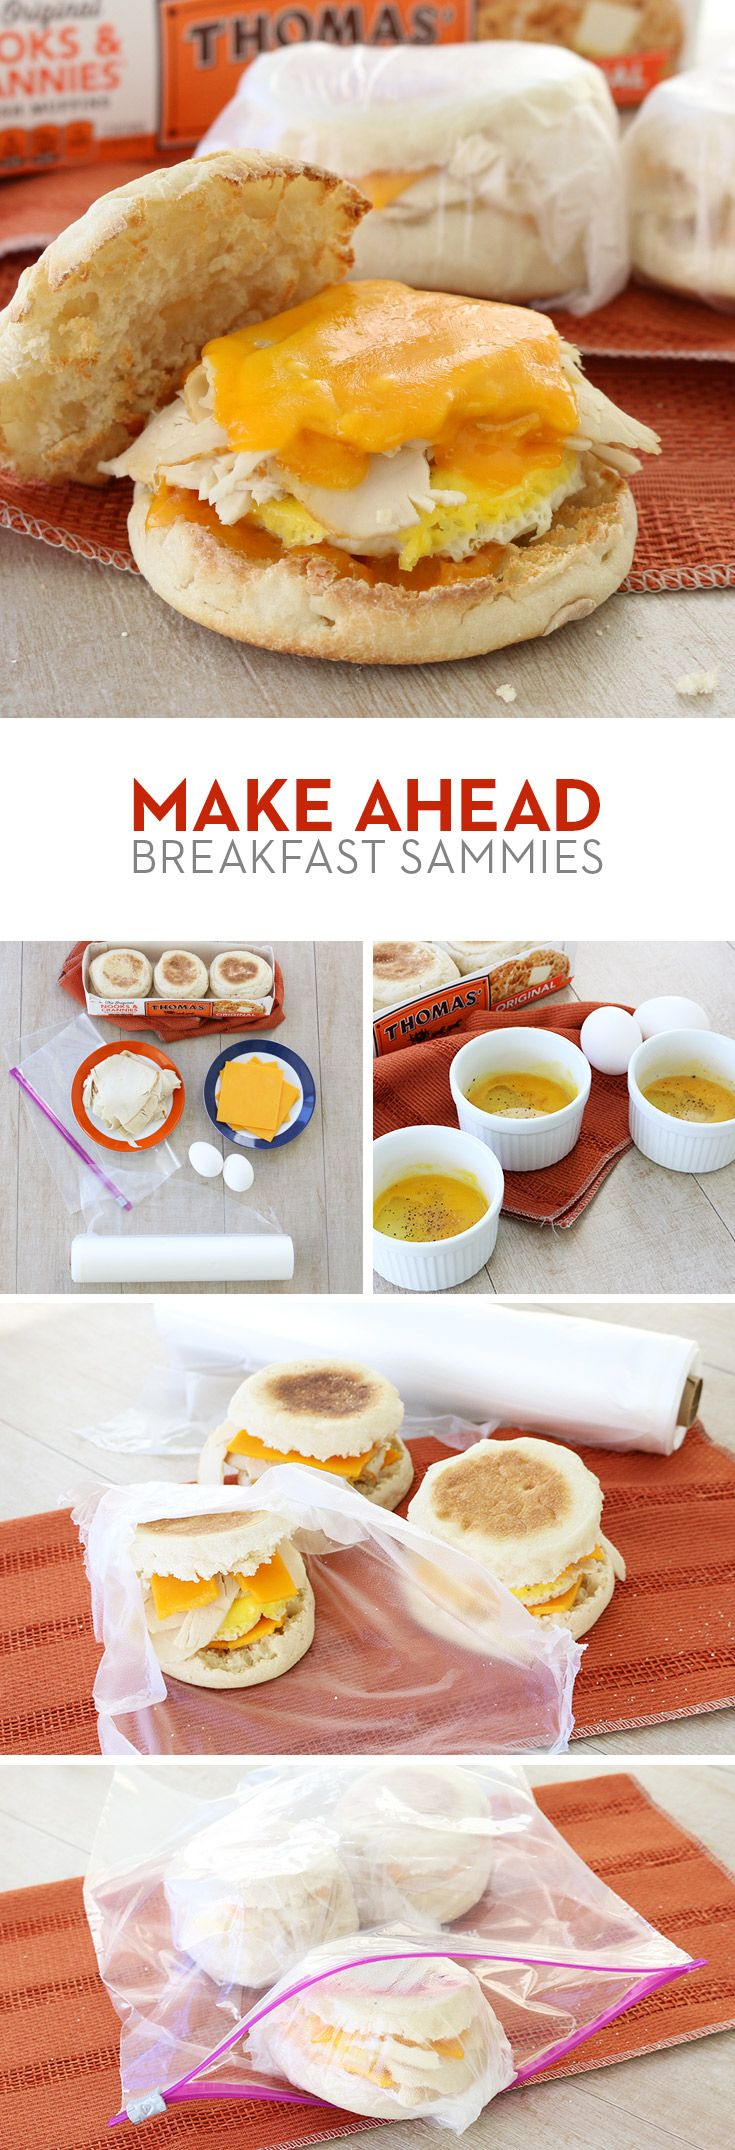 Make Ahead Breakfast Sammies: Hosting guests or just need a filling, grab 'n' go breakfast solution? These make-ahead Thomas' English Muffin sandwiches with eggs, turkey and Cheddar cheese are just the thing. Make a big batch in advance so you'll be ready whenever hunger arises.